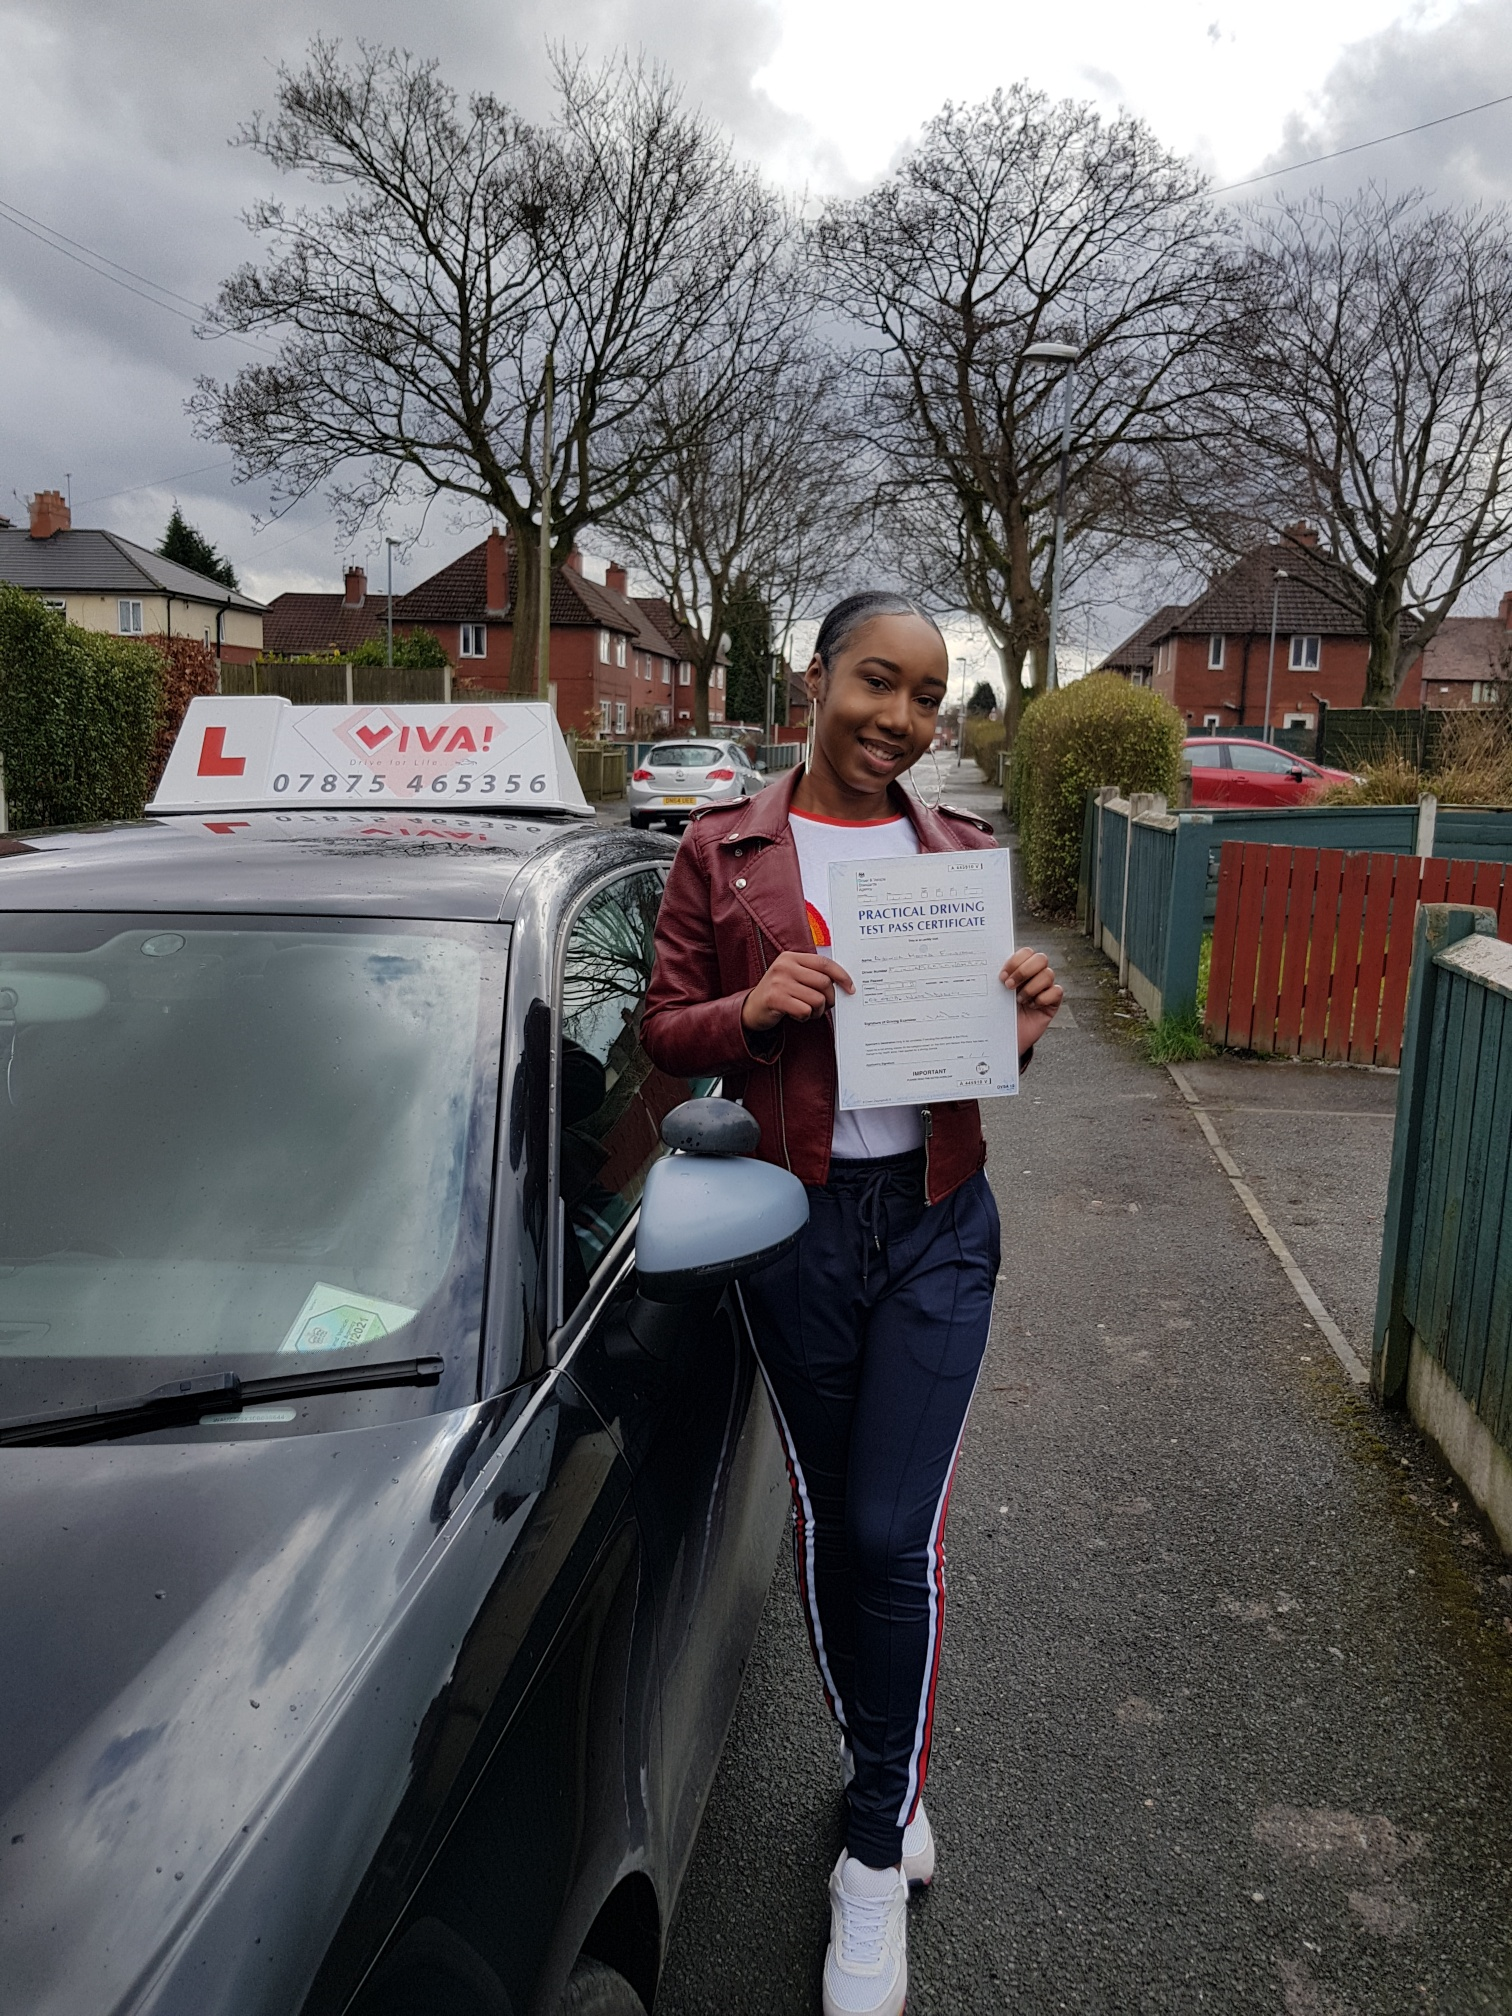 manchester driving lessons. Test Passed.